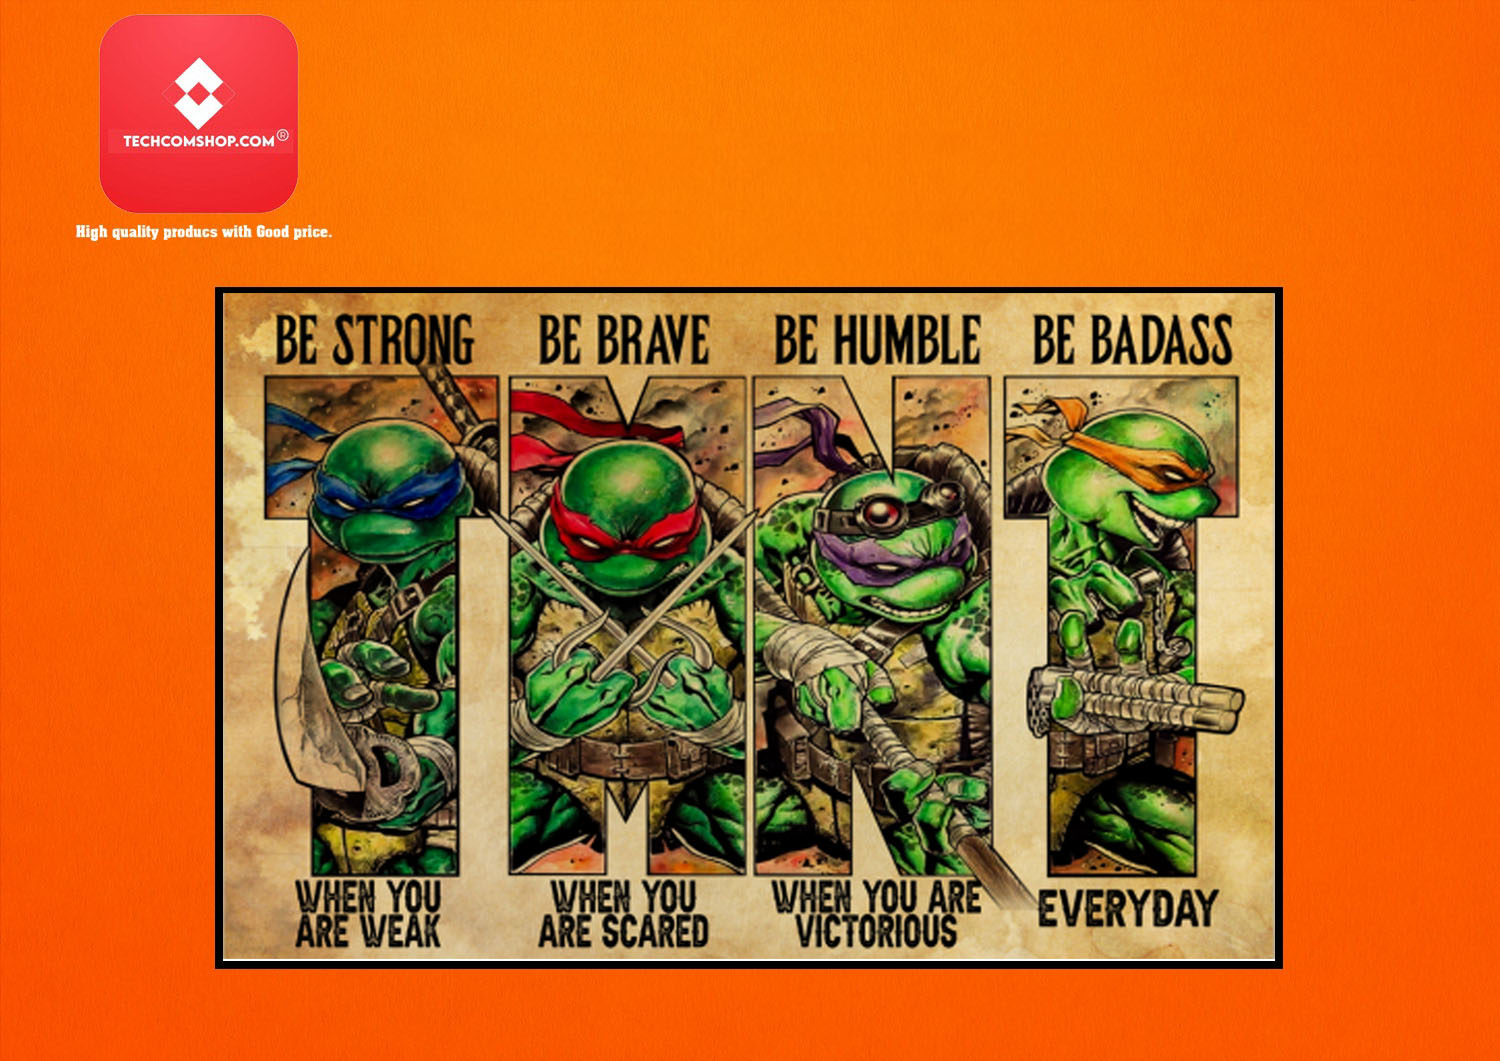 Teenage Mutant Ninja Turtles TMNT be strong be brave be humble be badass poster 8